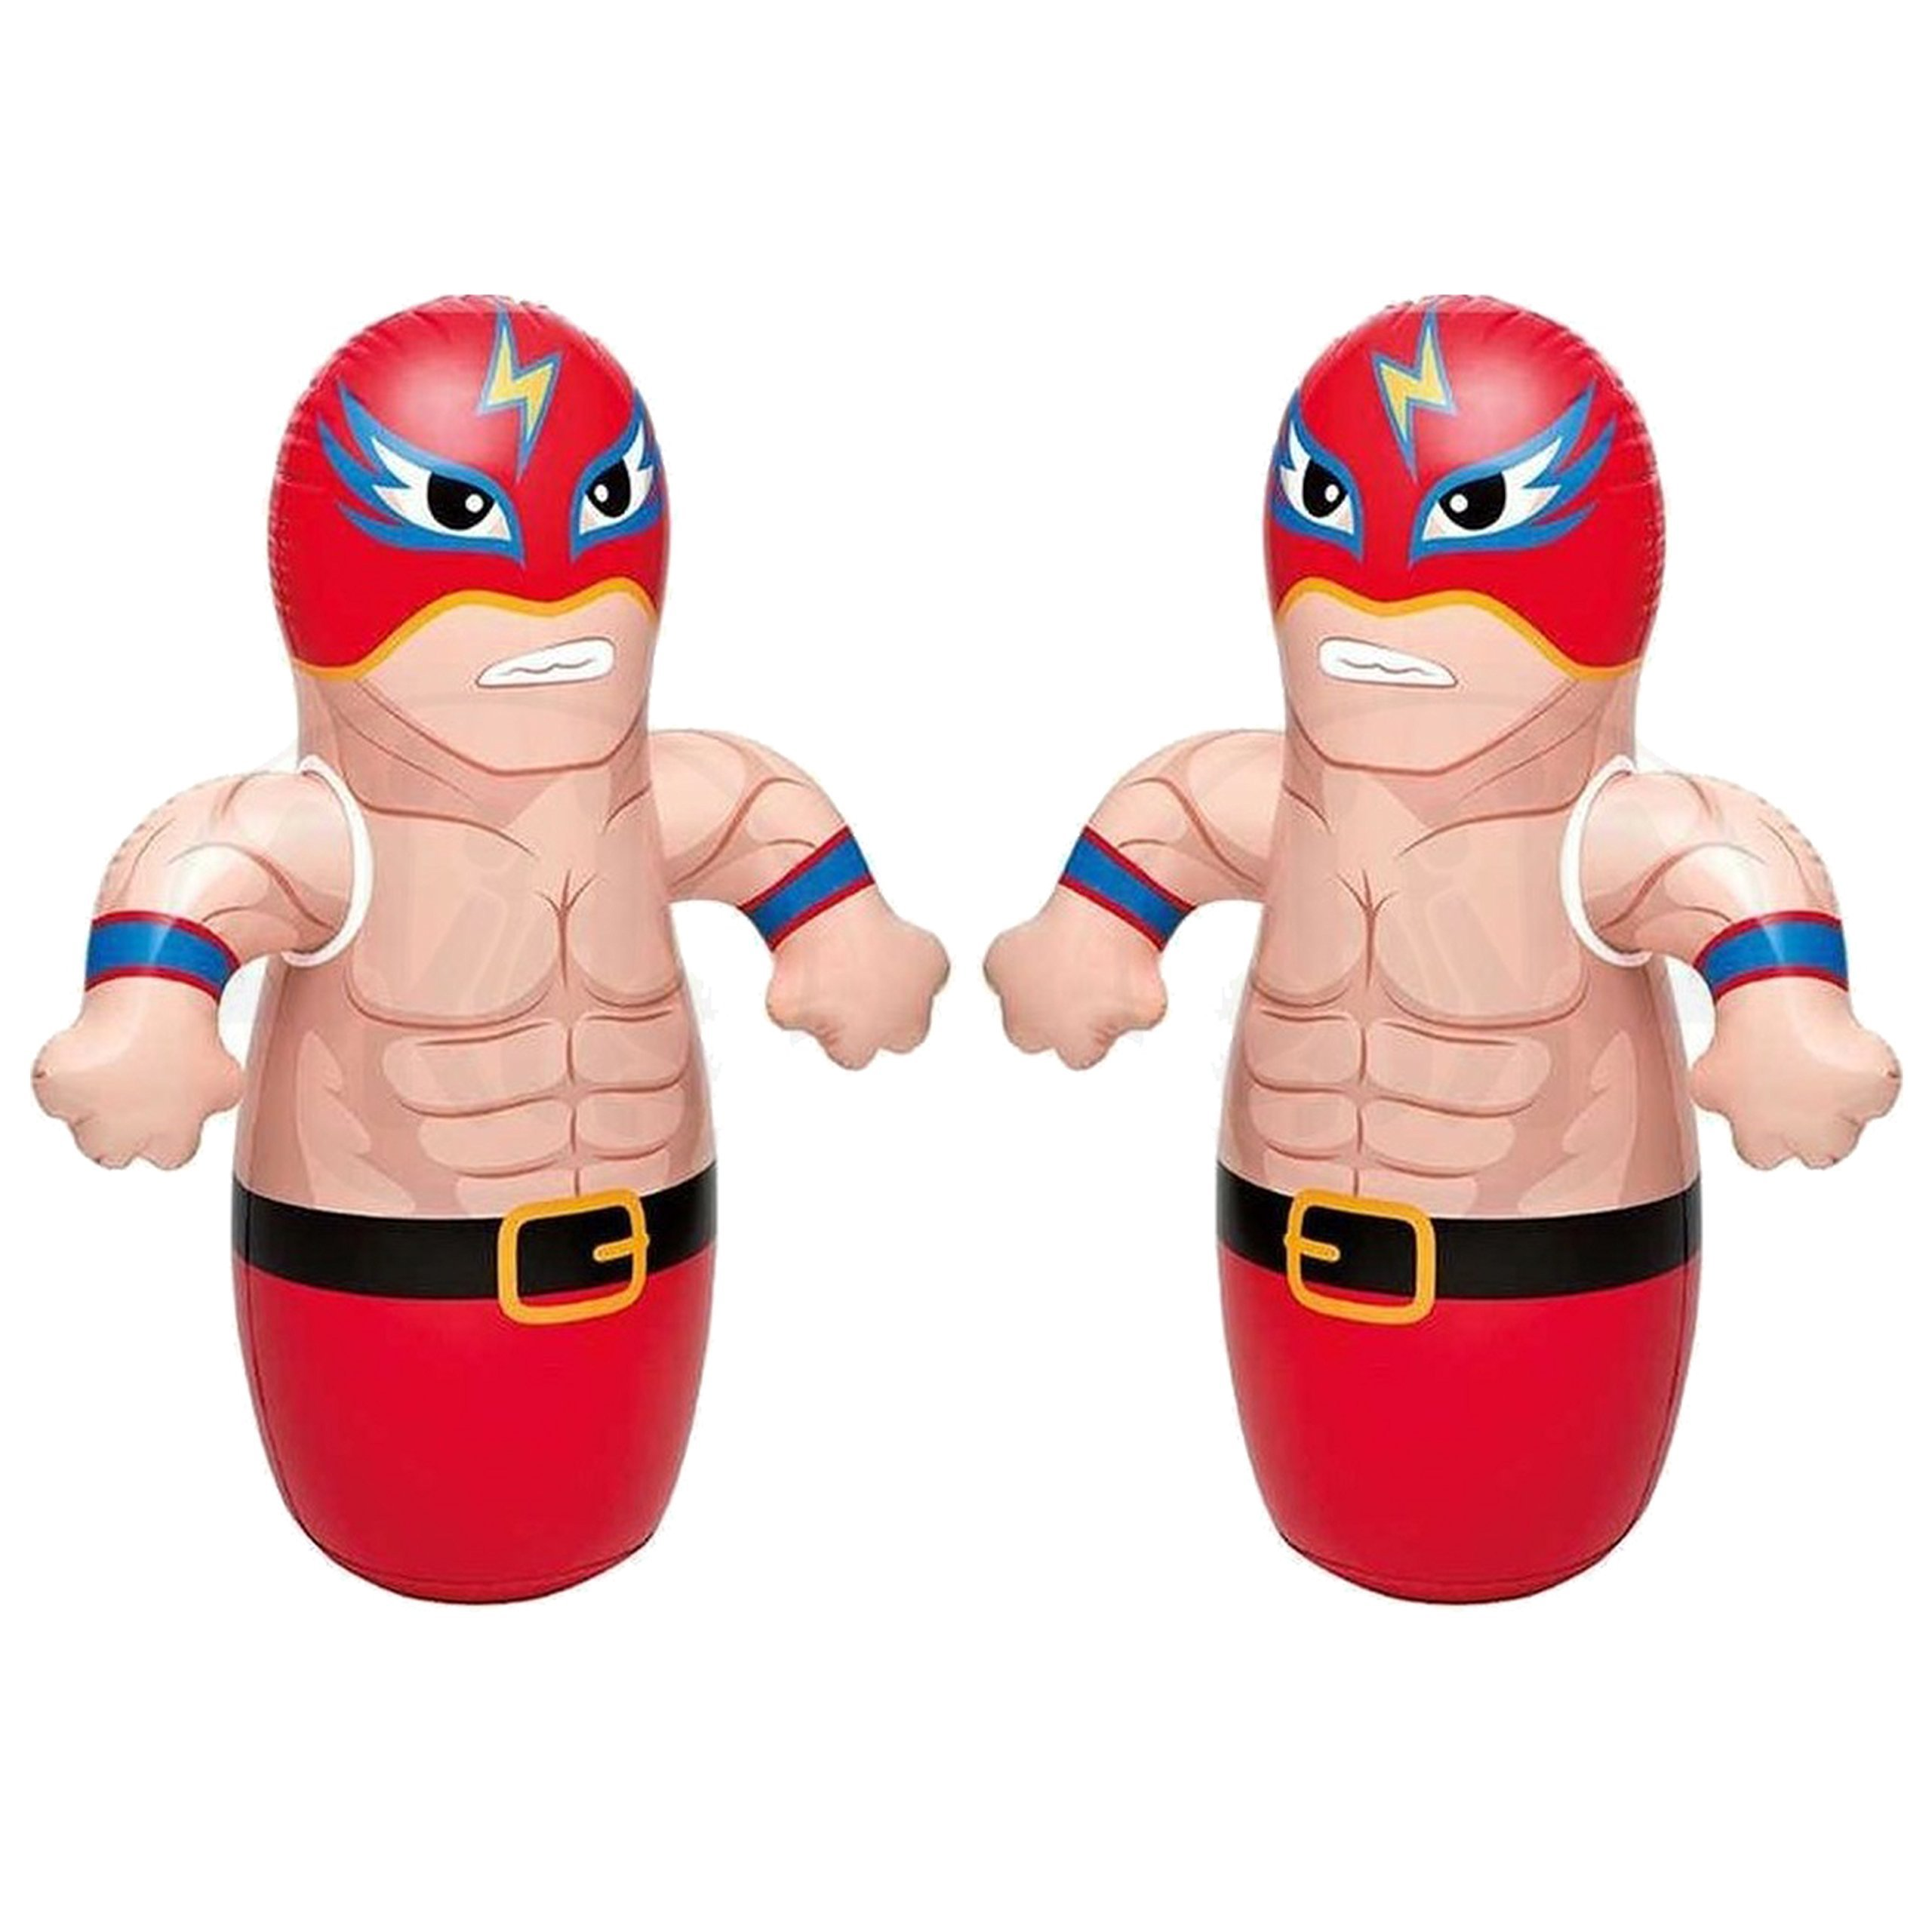 36'' 2 Pack 3-D Bop Bag Masked Wrestlers - MMA Fighter Wrestling Kick Boxing Tackle Buddy Punching Bop Bag Fun Kids Indoor Outdoor Toy